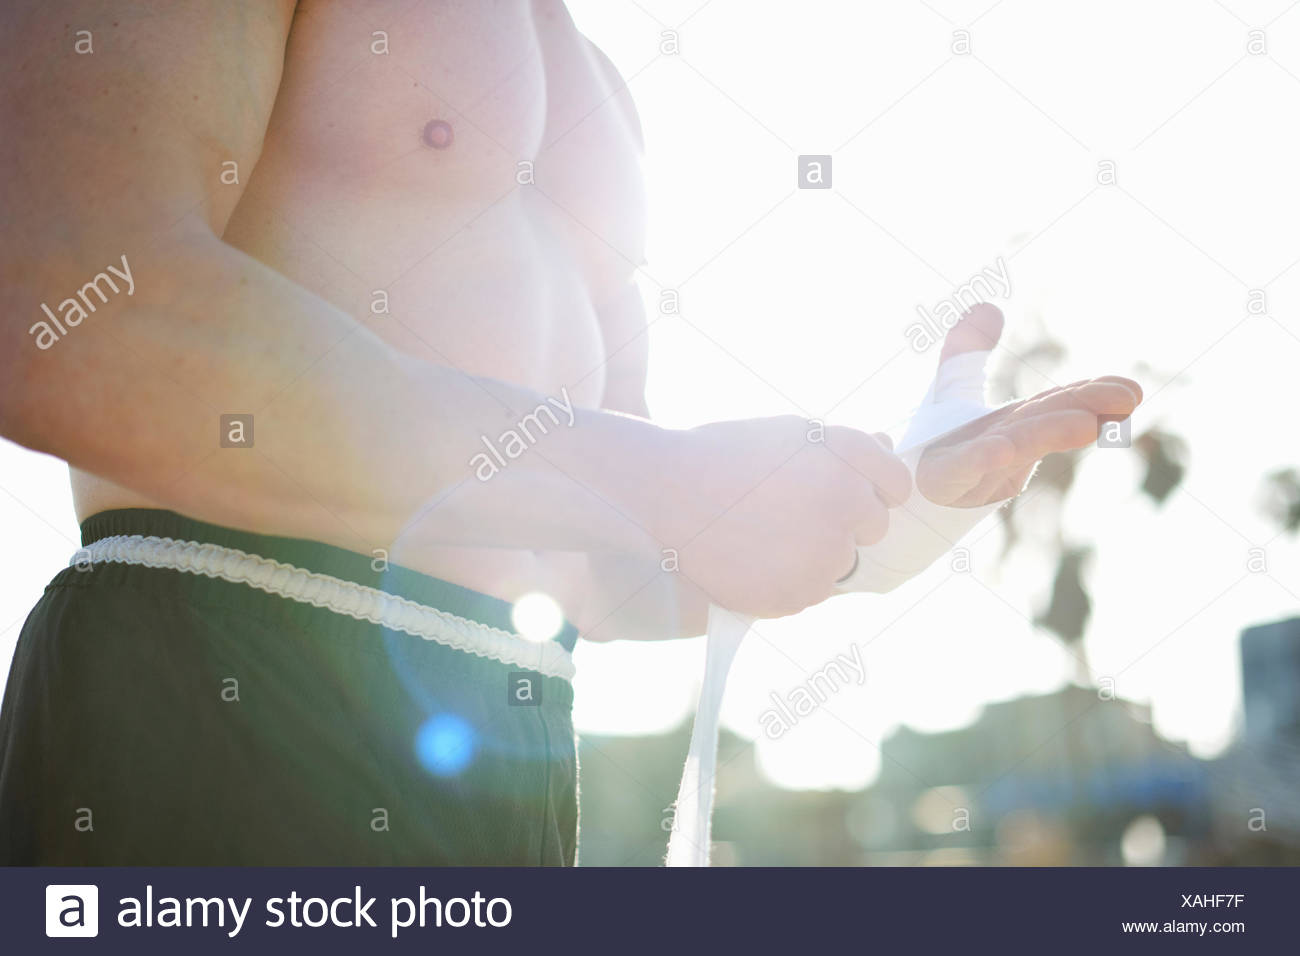 Low angle view of muscular mans mid section, applying tape grip to hand - Stock Image